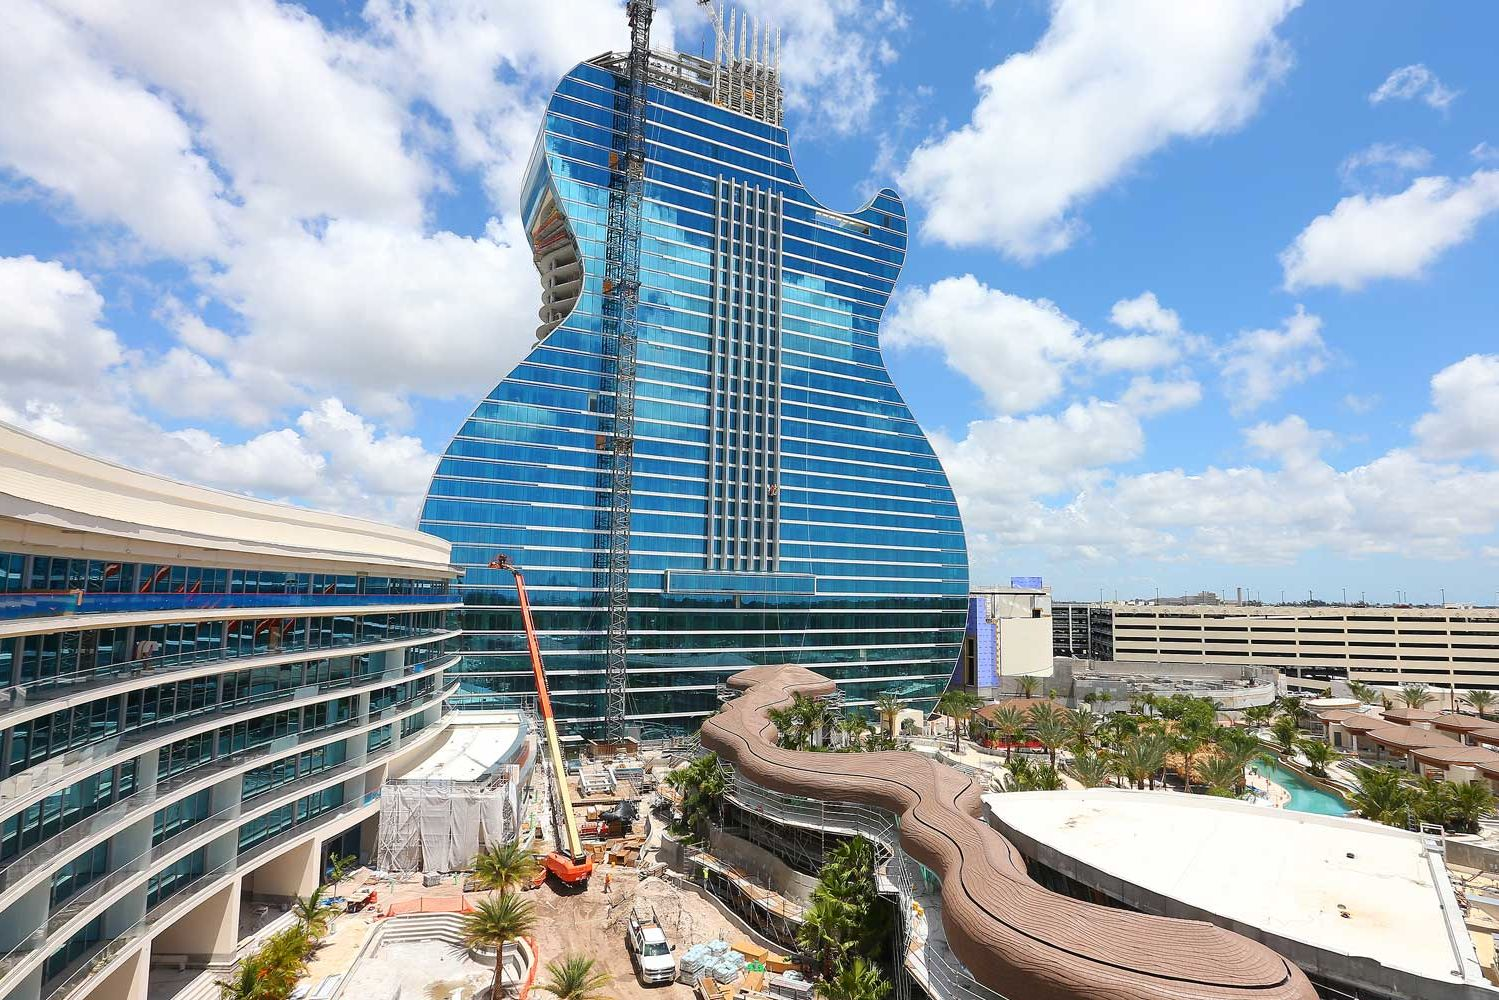 Hard Rock's First Guitar-shaped Hotel in Florida Will Have Swim-up Suites and a Concert Venue